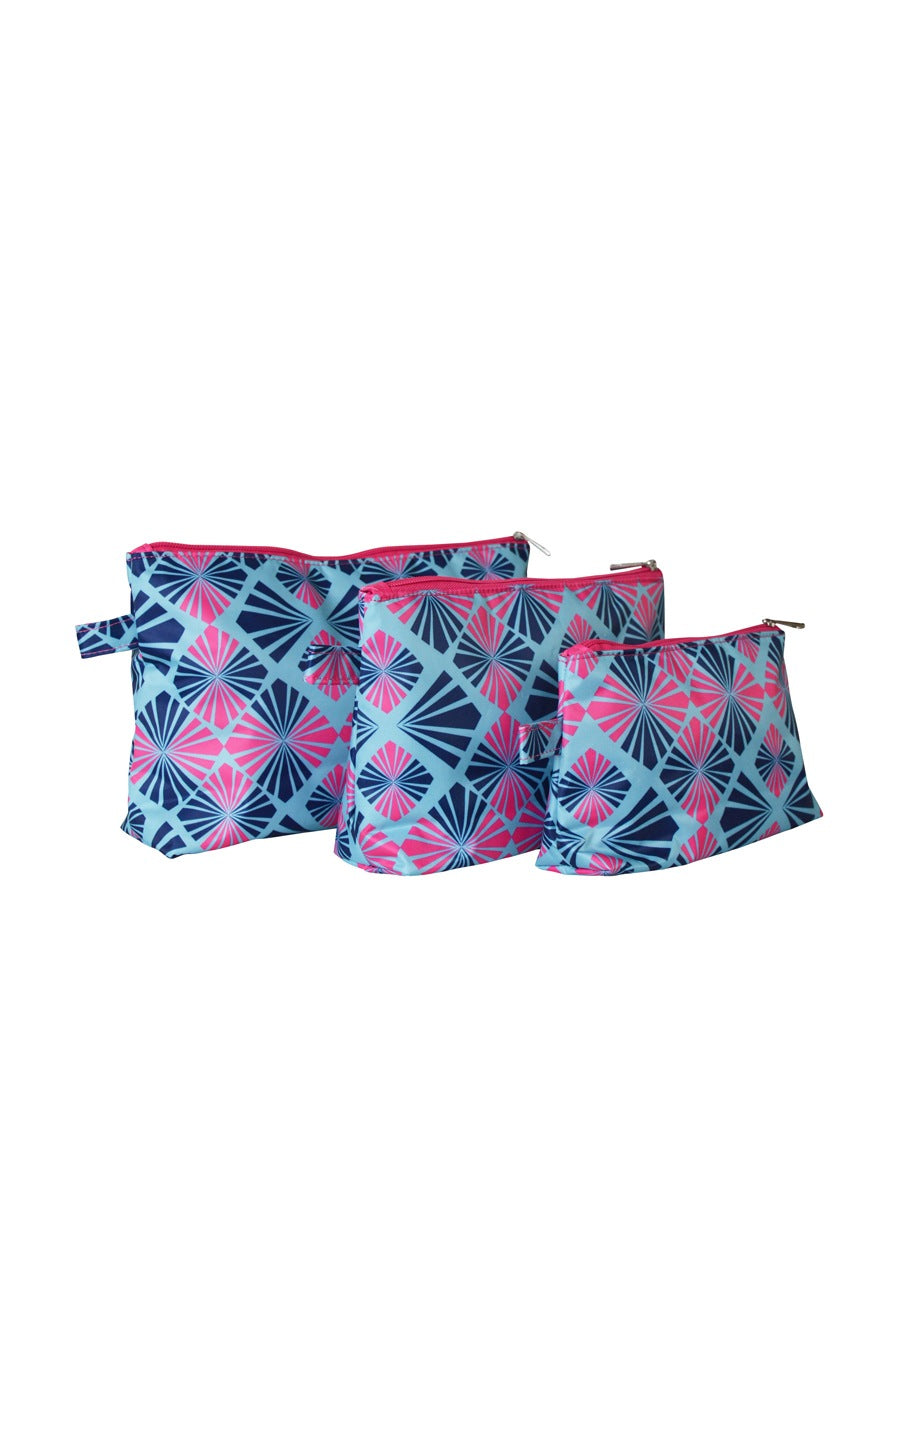 Summer Rays 3 Piece Cosmetic Bag Set